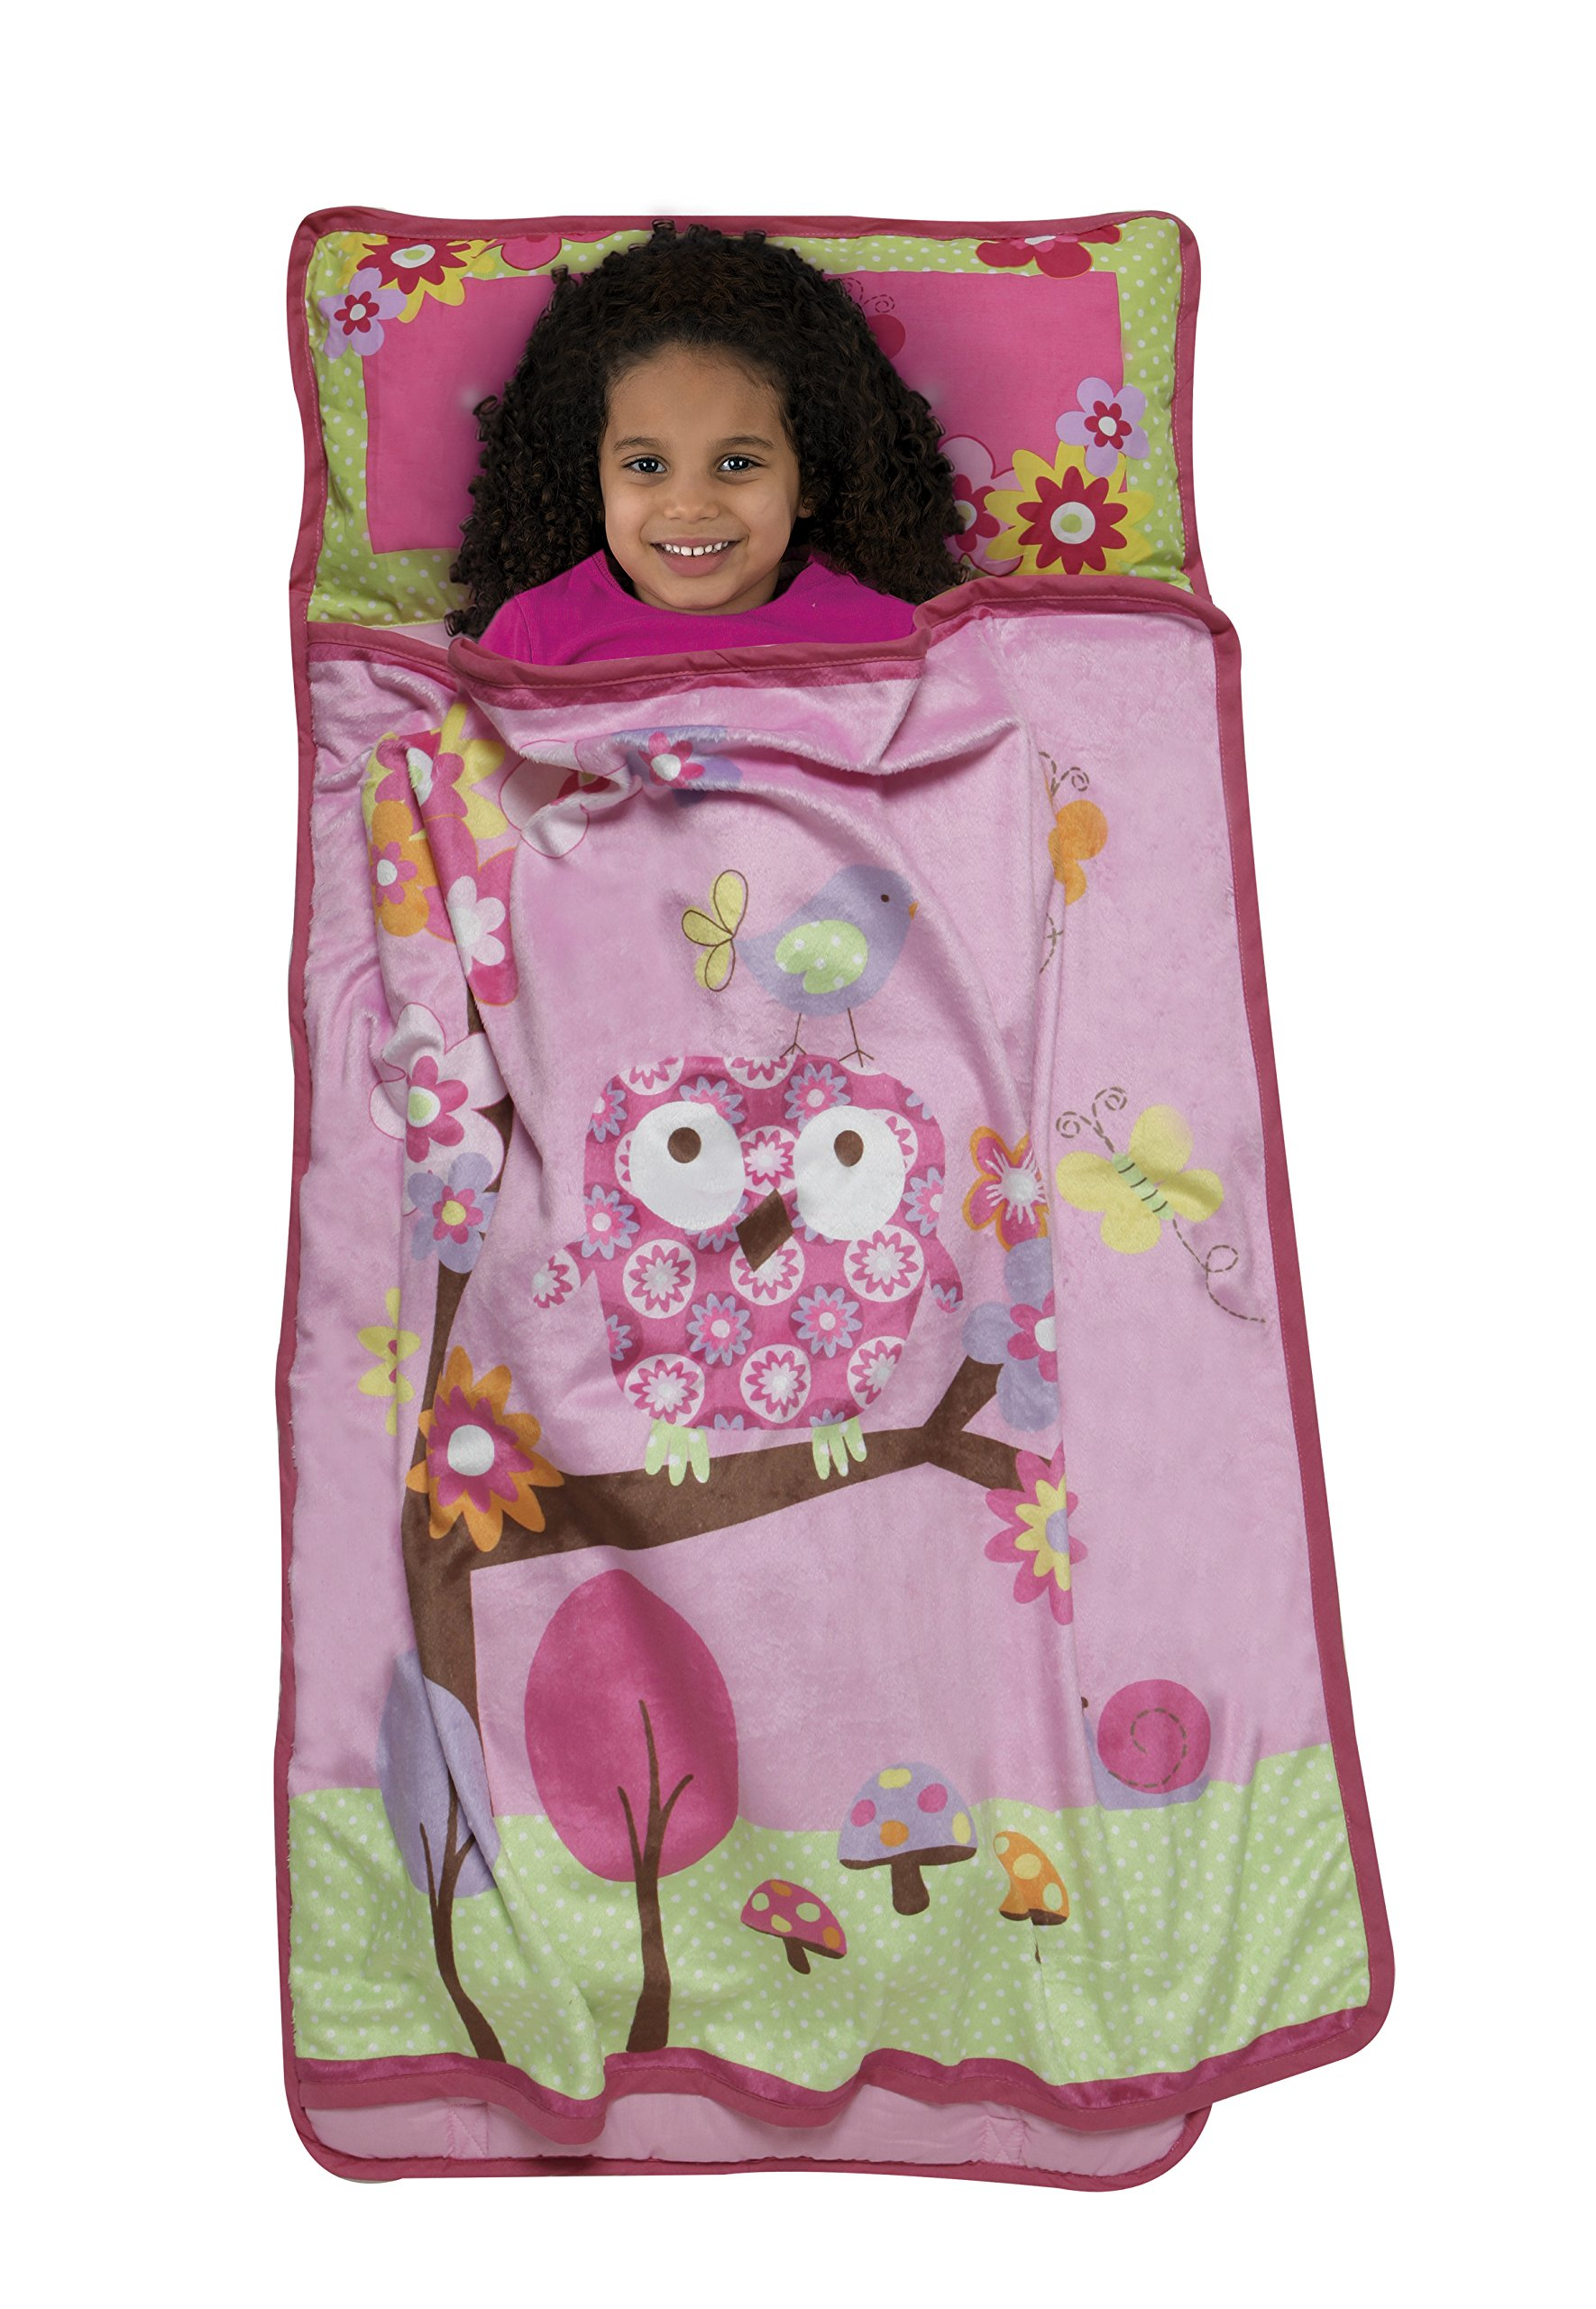 blanket exotic pillow for mats daycare nap memory kids bag sleeping deluxe best set foam mat